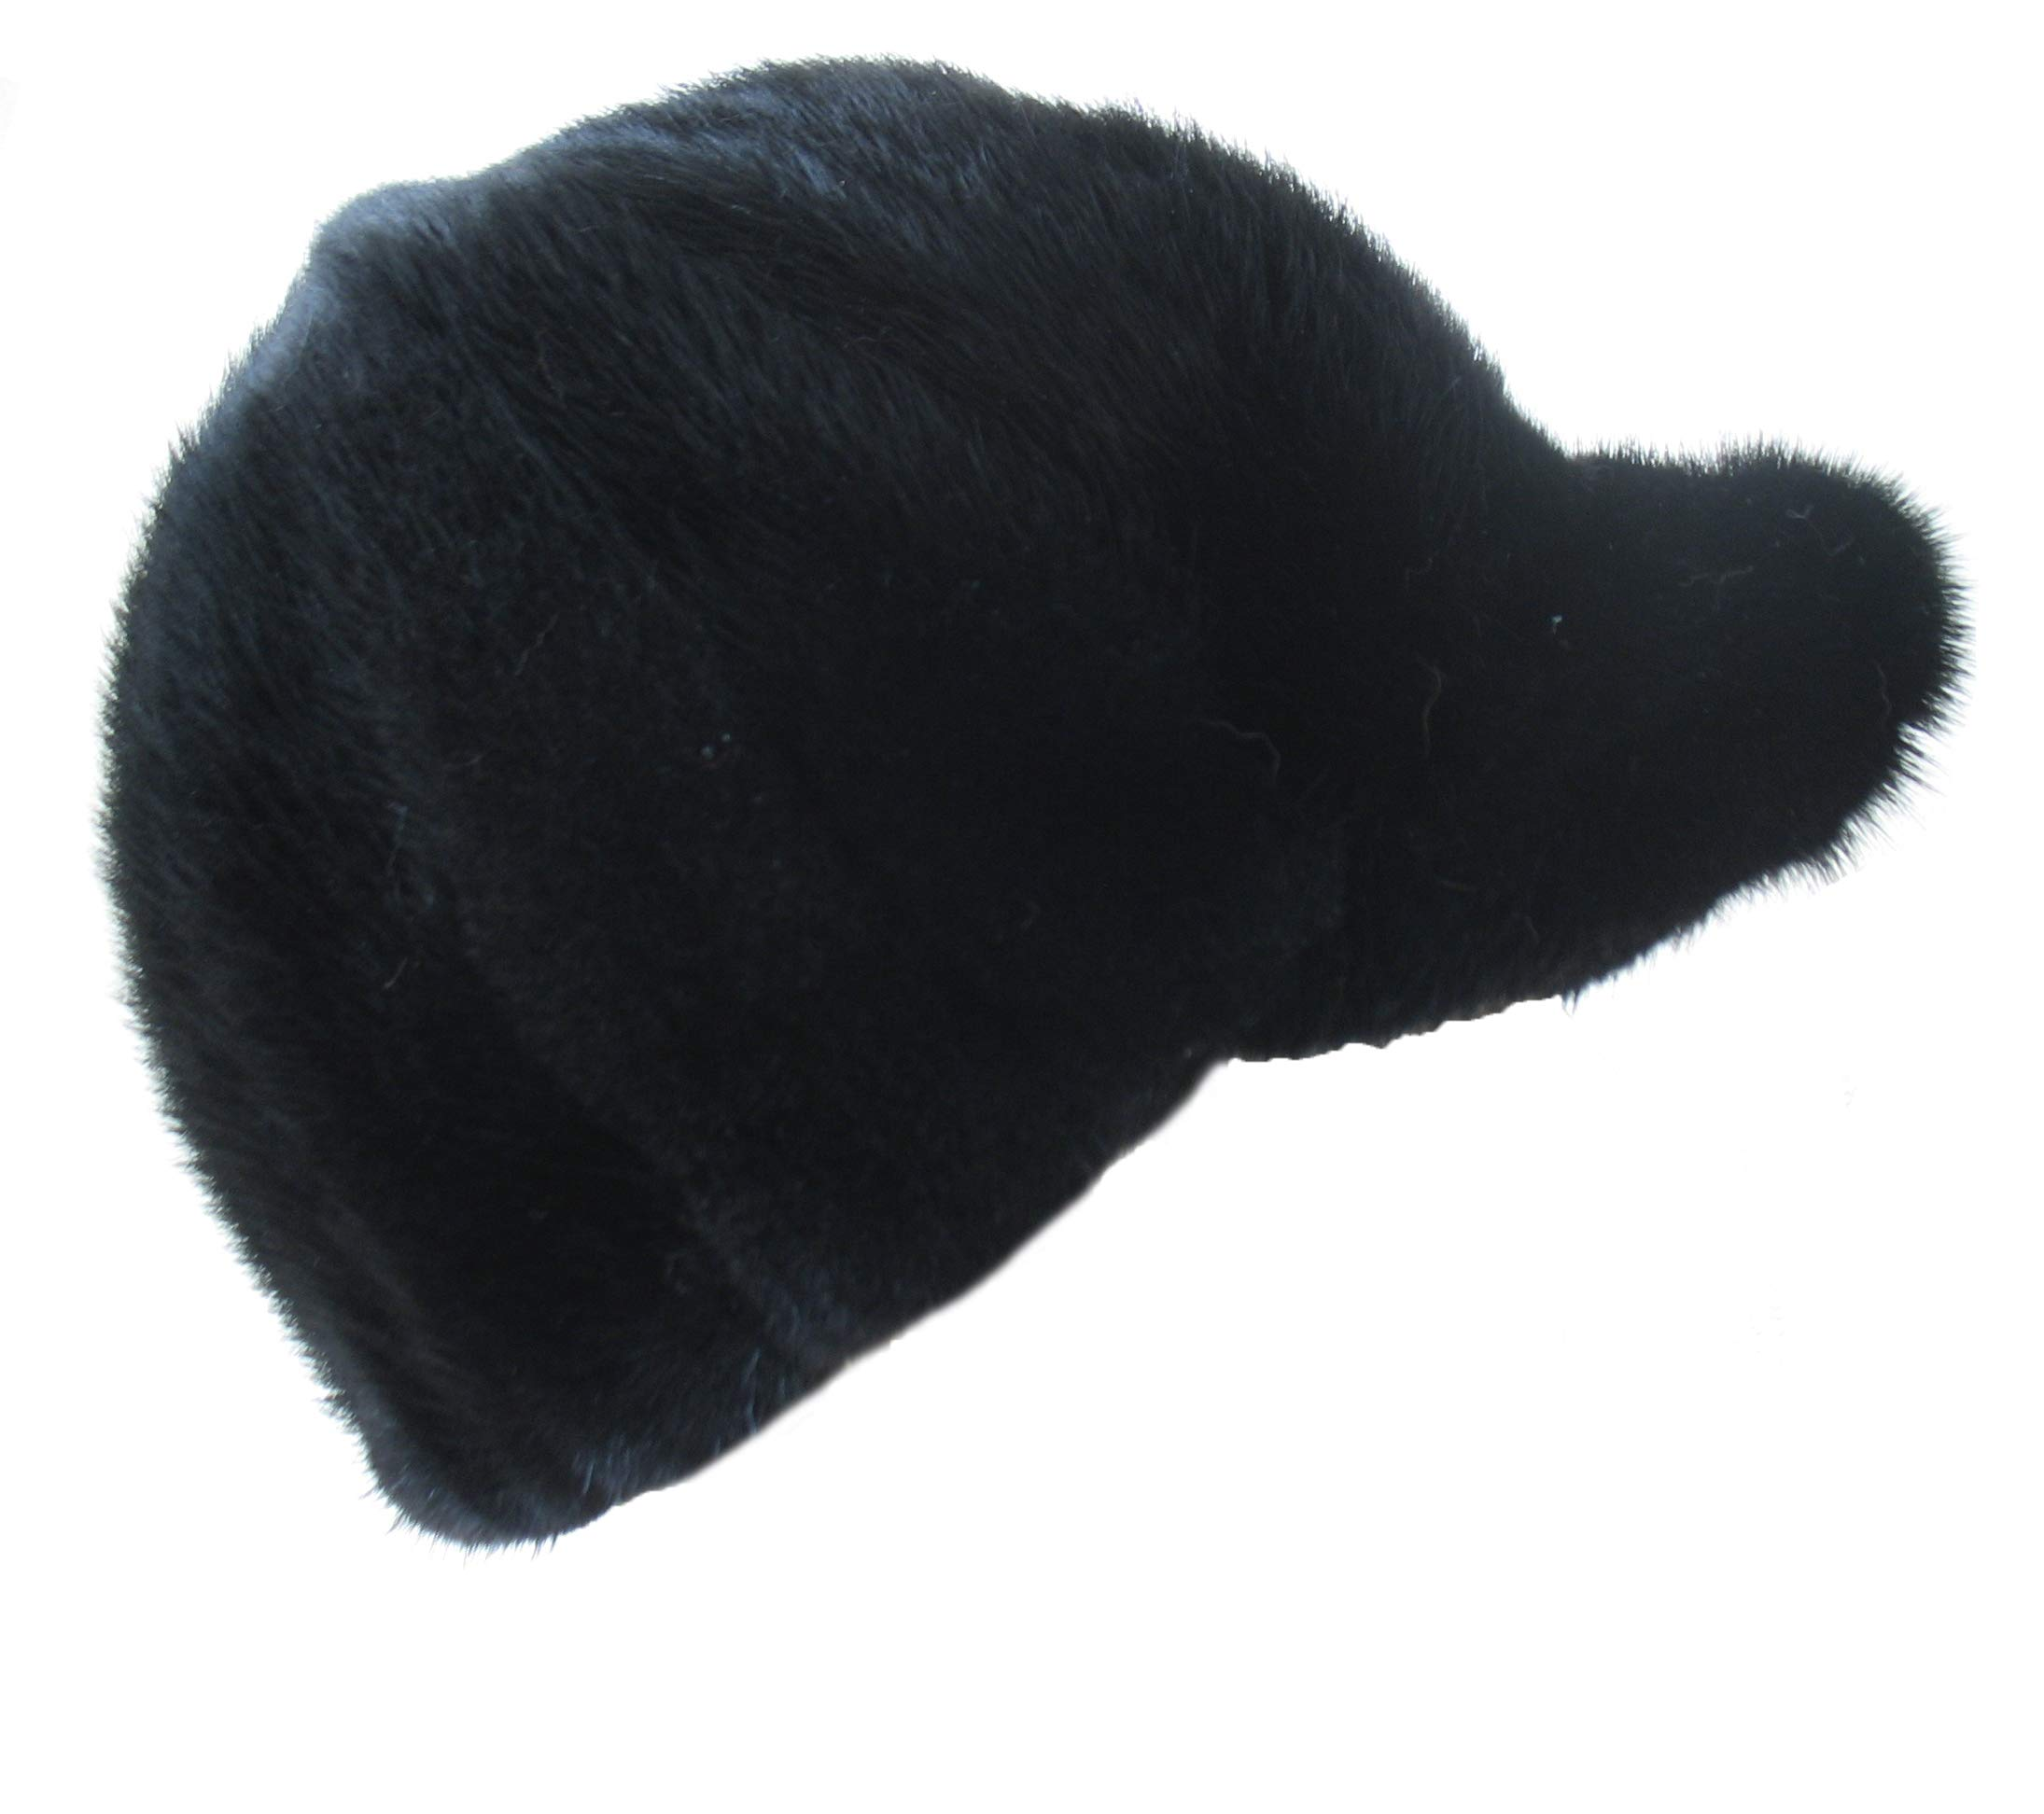 Real Mink Fur Hand-Made Hat Cap for Both Women and Men with Visor Black